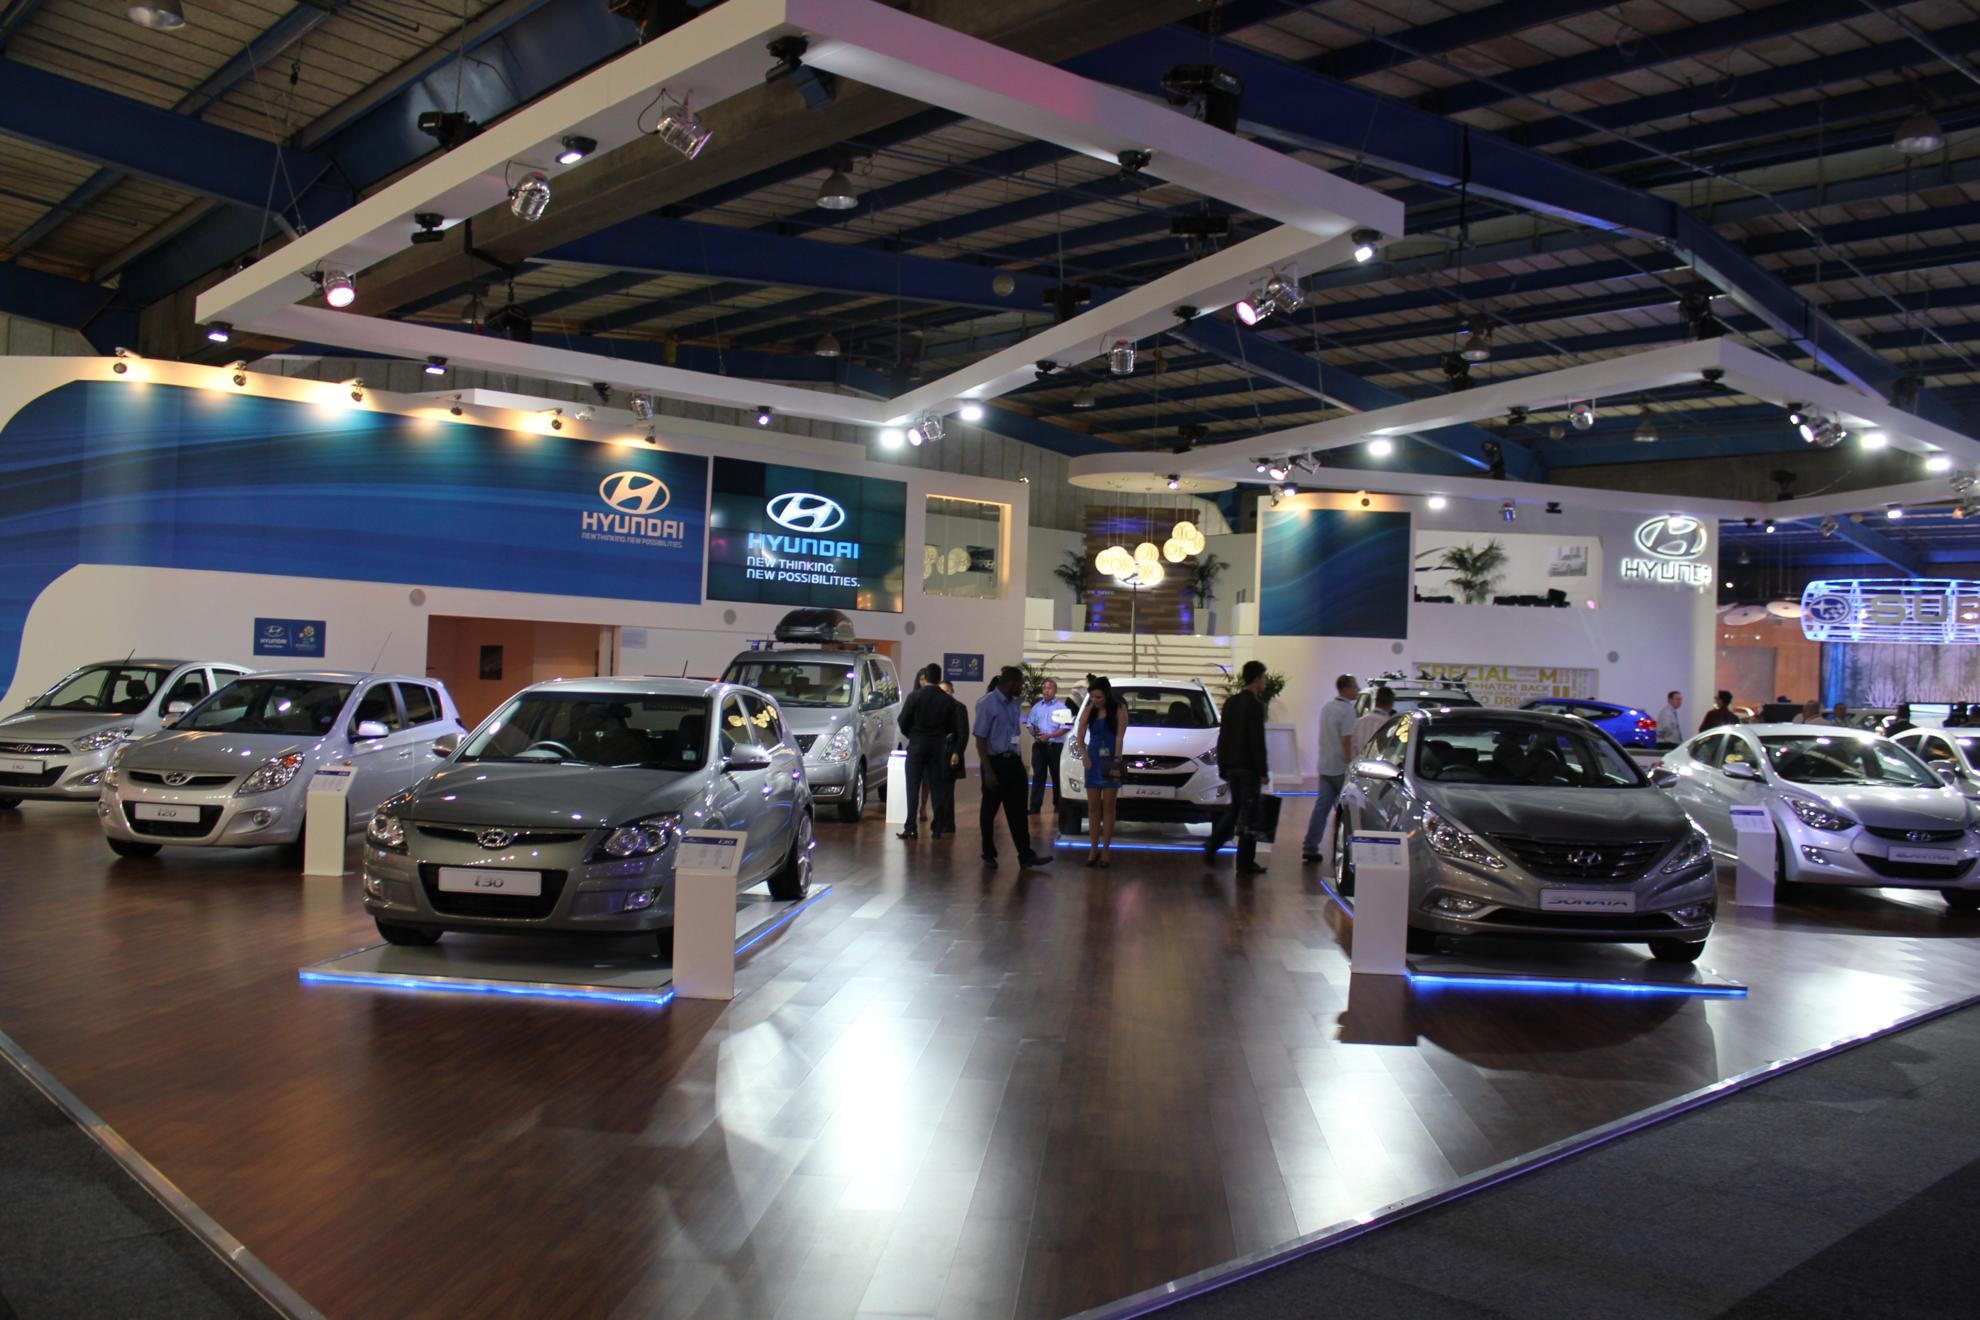 Images Hyundai At The Johannesburg Motor Show - Hyundai car show